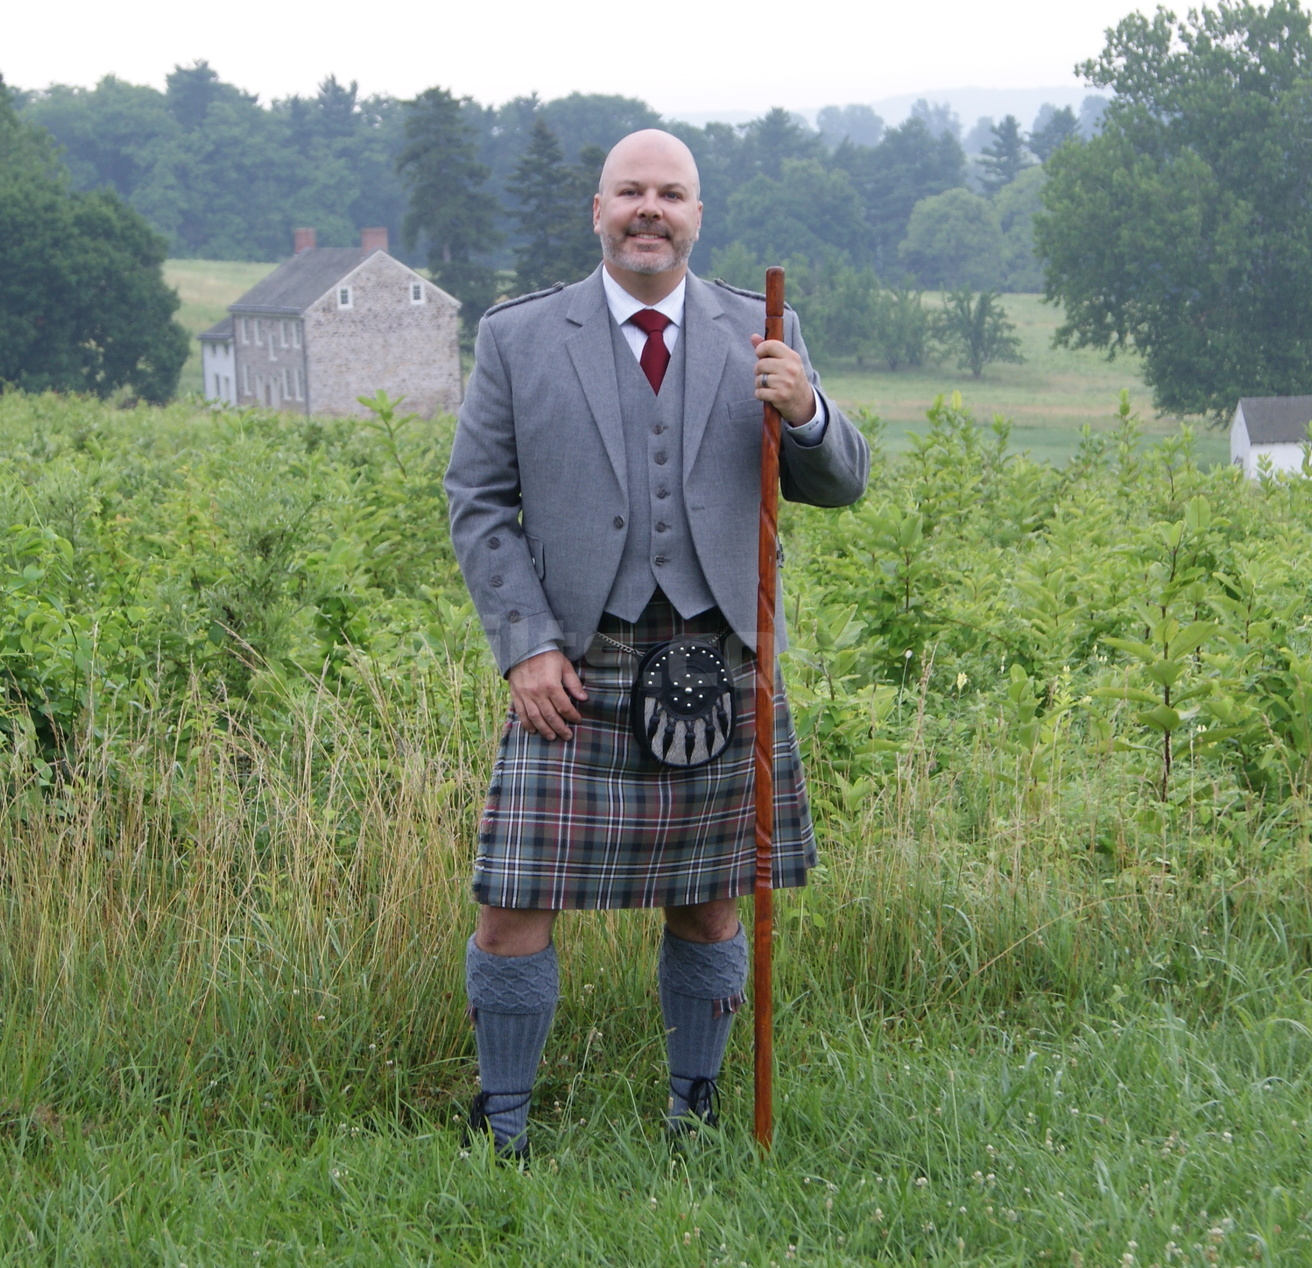 Check out our Grey Braemar Jacket for sale. Our Grey Braemar Vest looks great on a kilt.